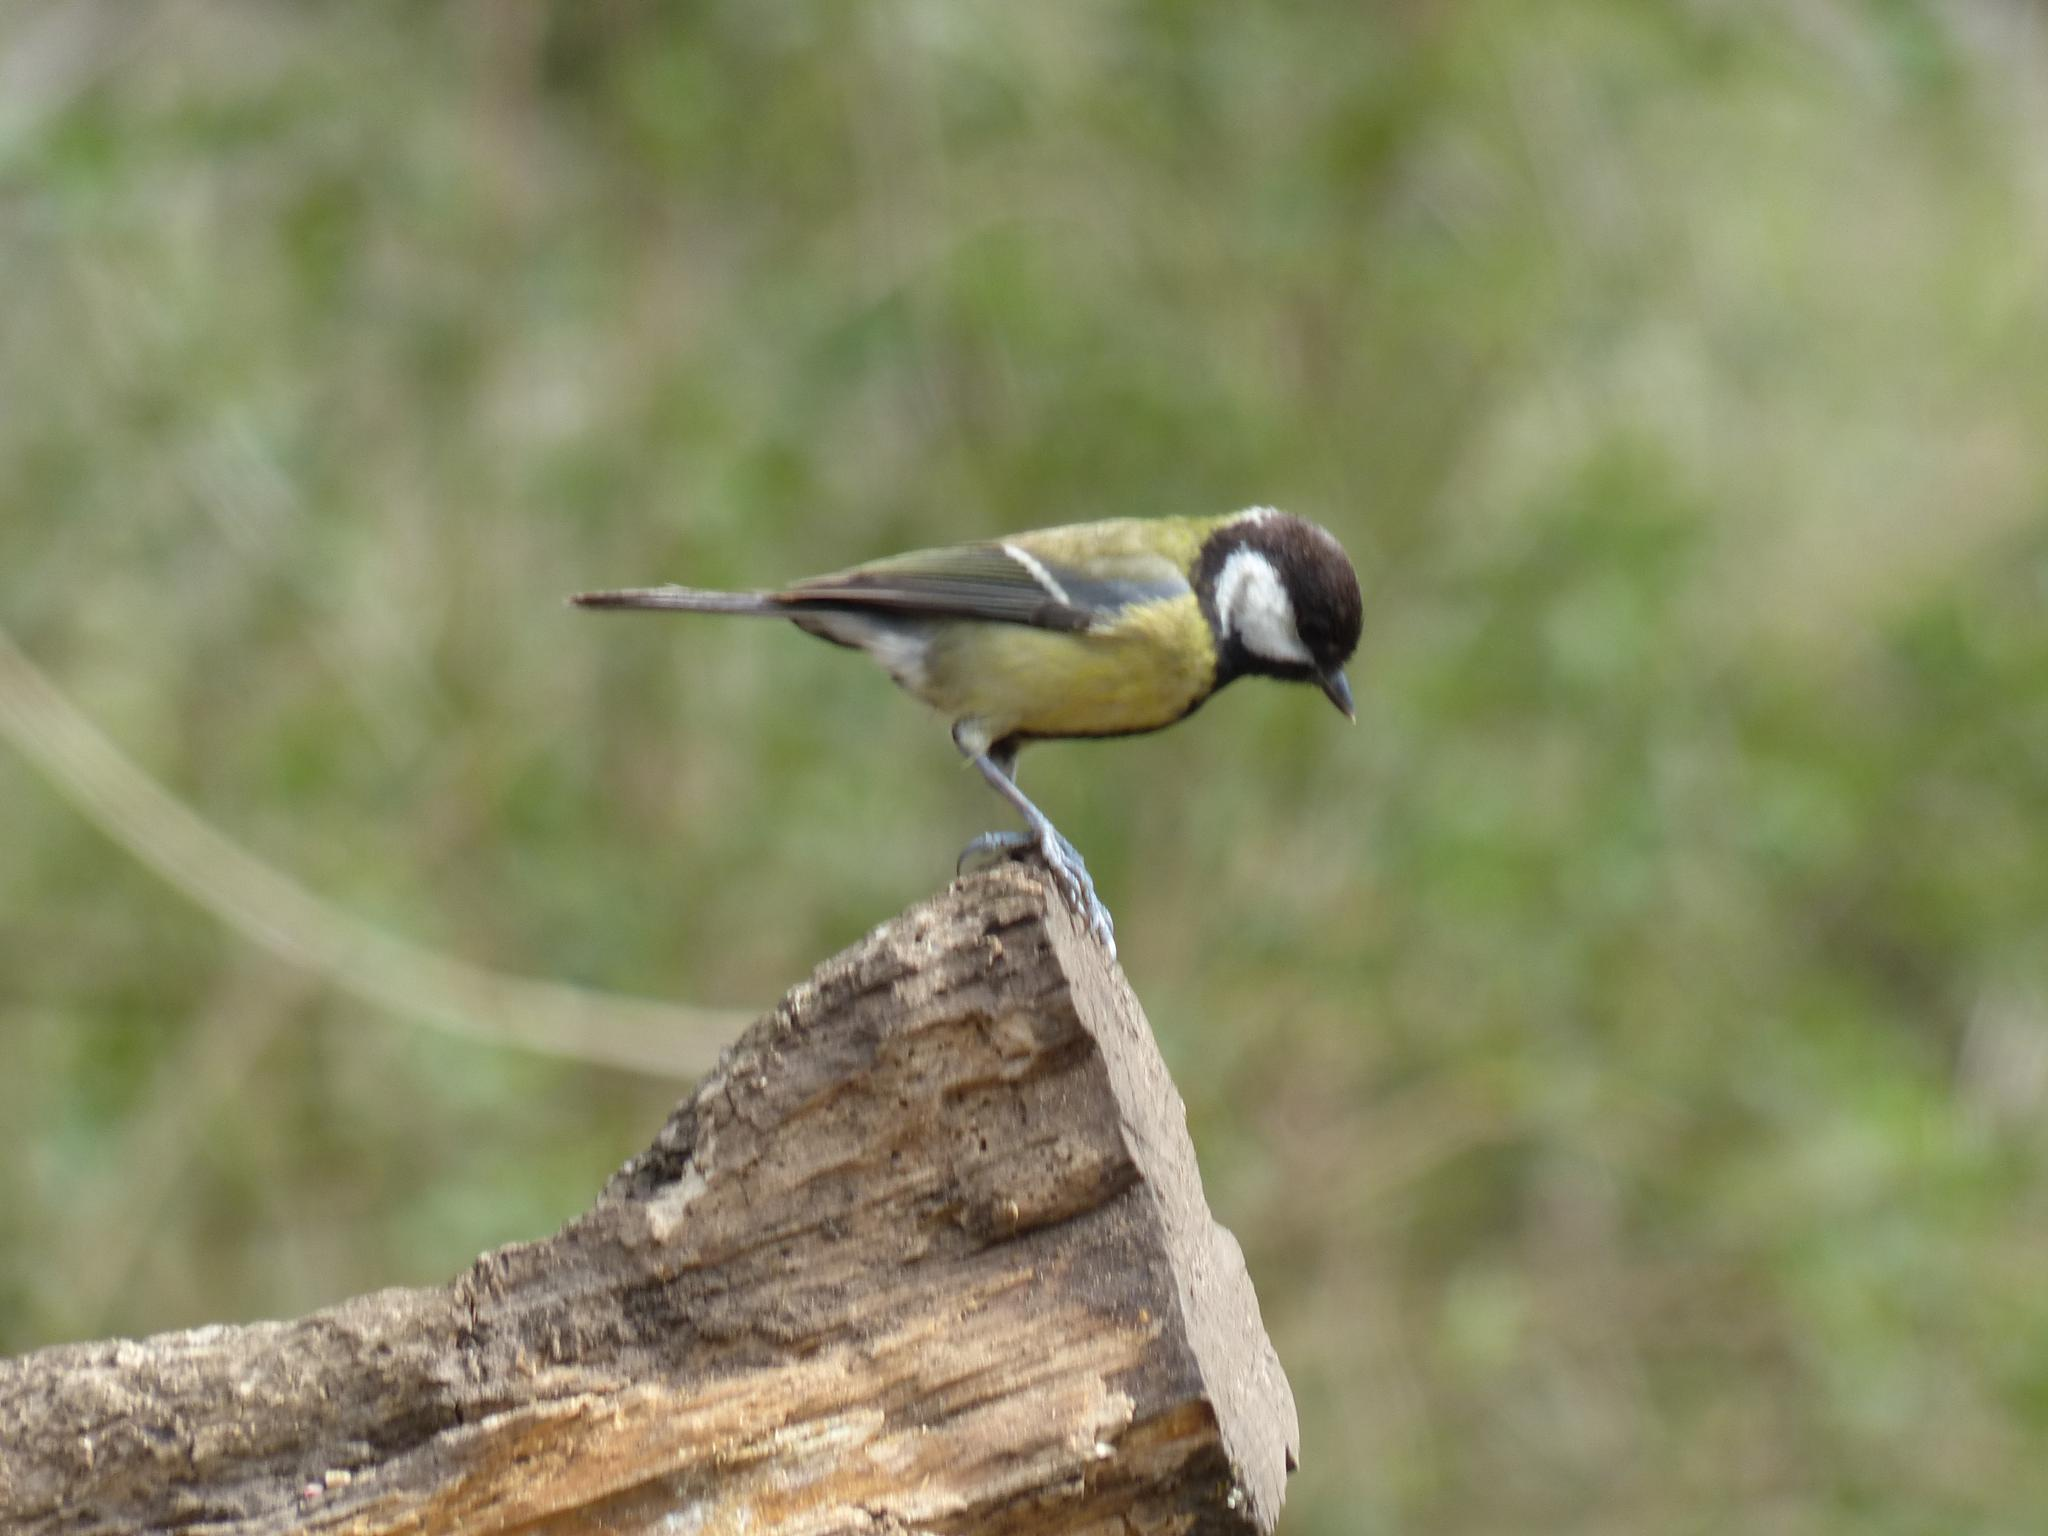 Great Tit by wendy.west.9212